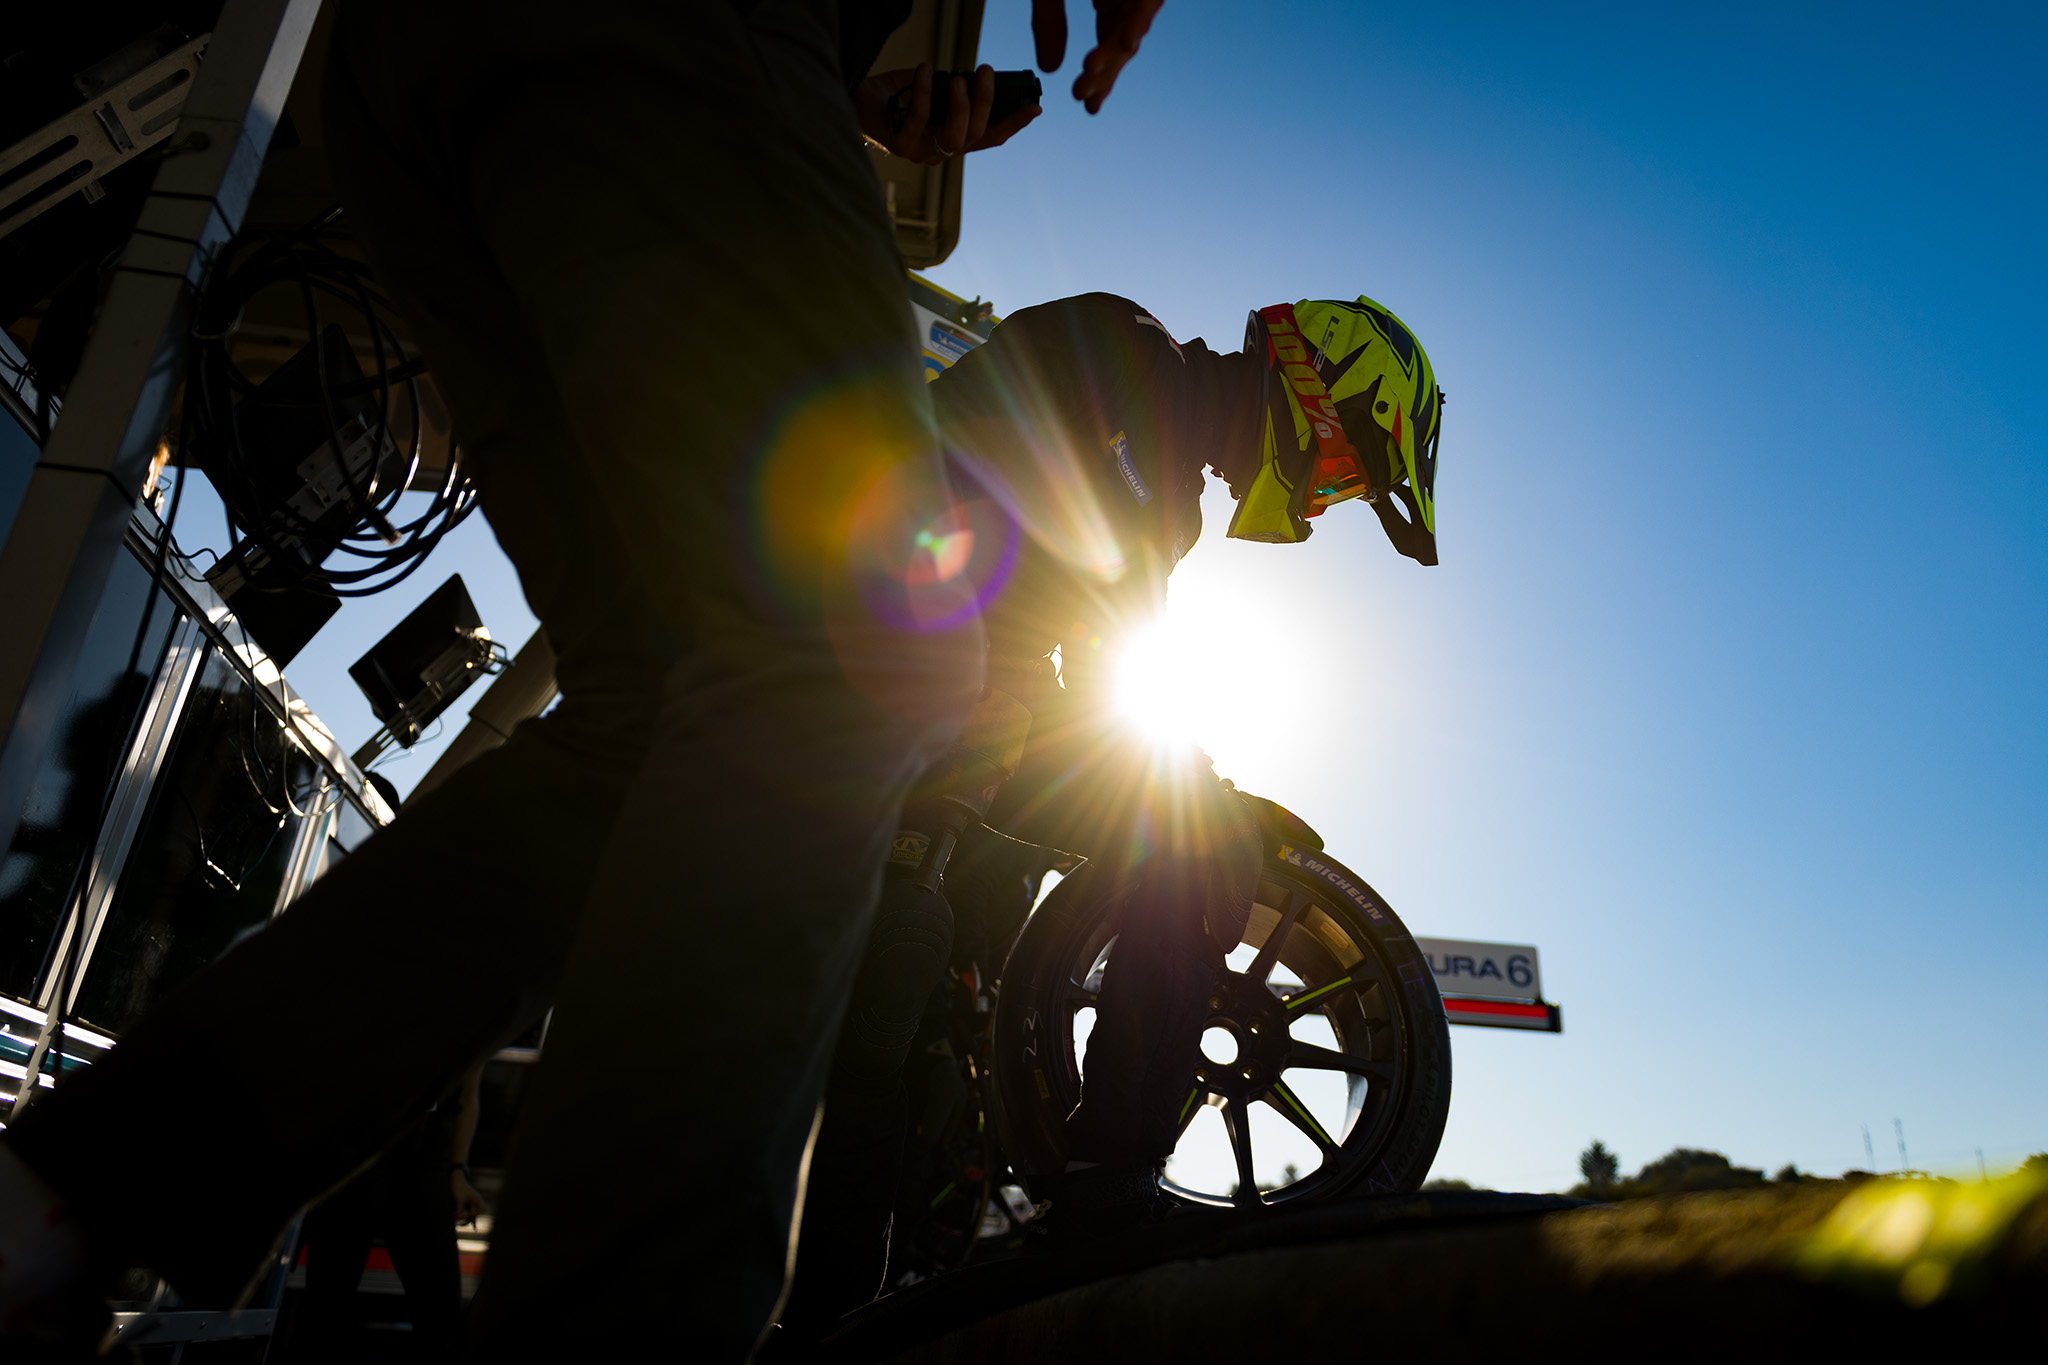 Silhouette of FastMD pit crew ahead of a tire change at IMSA Laguna Seca, motorsports photography by Luke Munnell